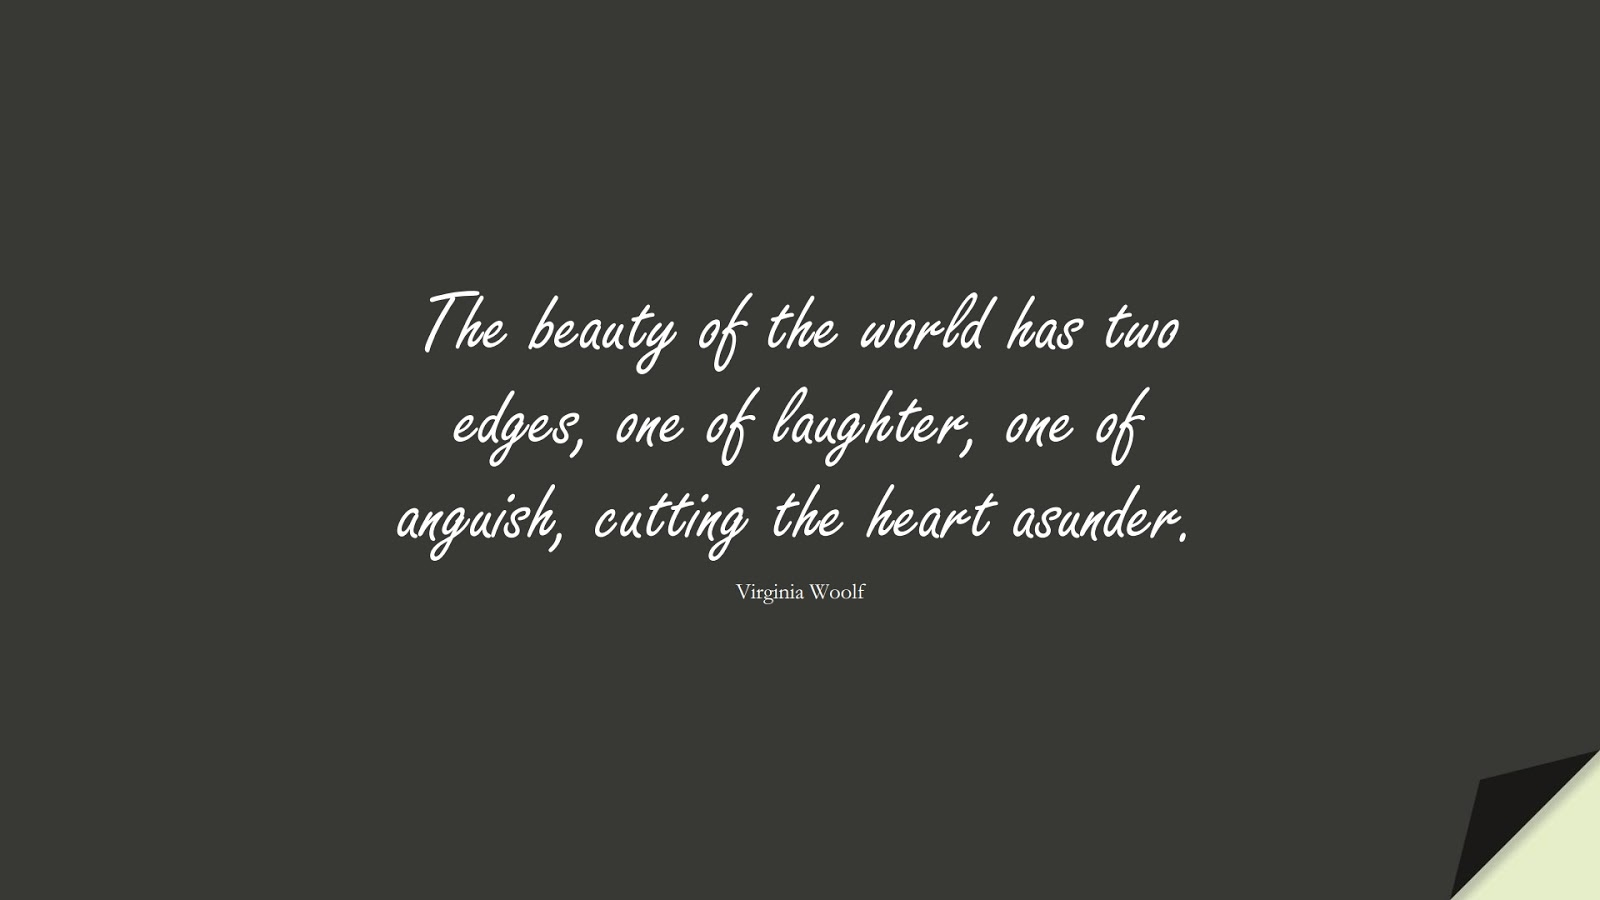 The beauty of the world has two edges, one of laughter, one of anguish, cutting the heart asunder. (Virginia Woolf);  #FearQuotes